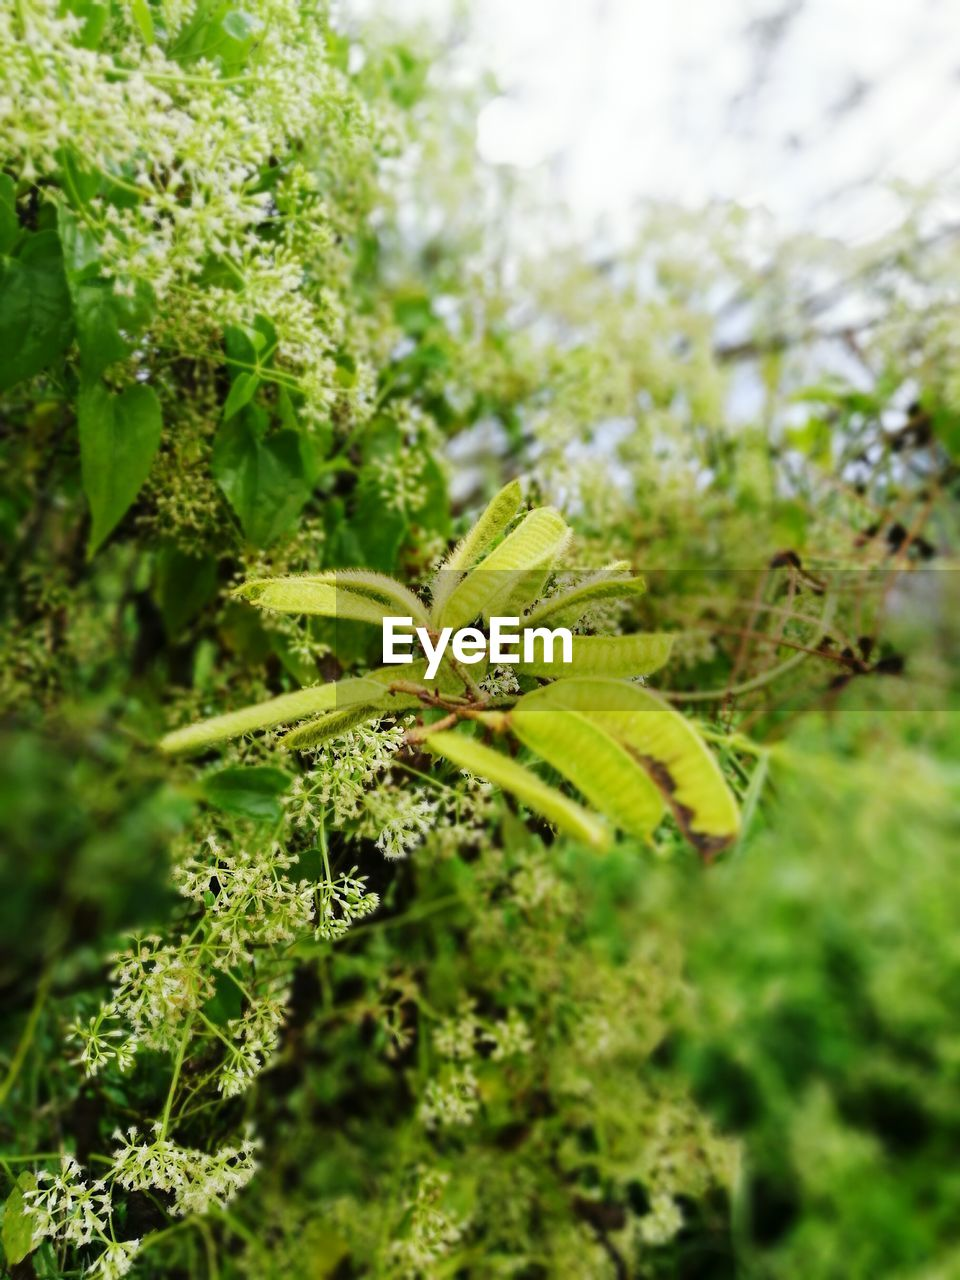 green color, nature, growth, no people, plant, insect, close-up, focus on foreground, outdoors, day, leaf, animals in the wild, beauty in nature, animal themes